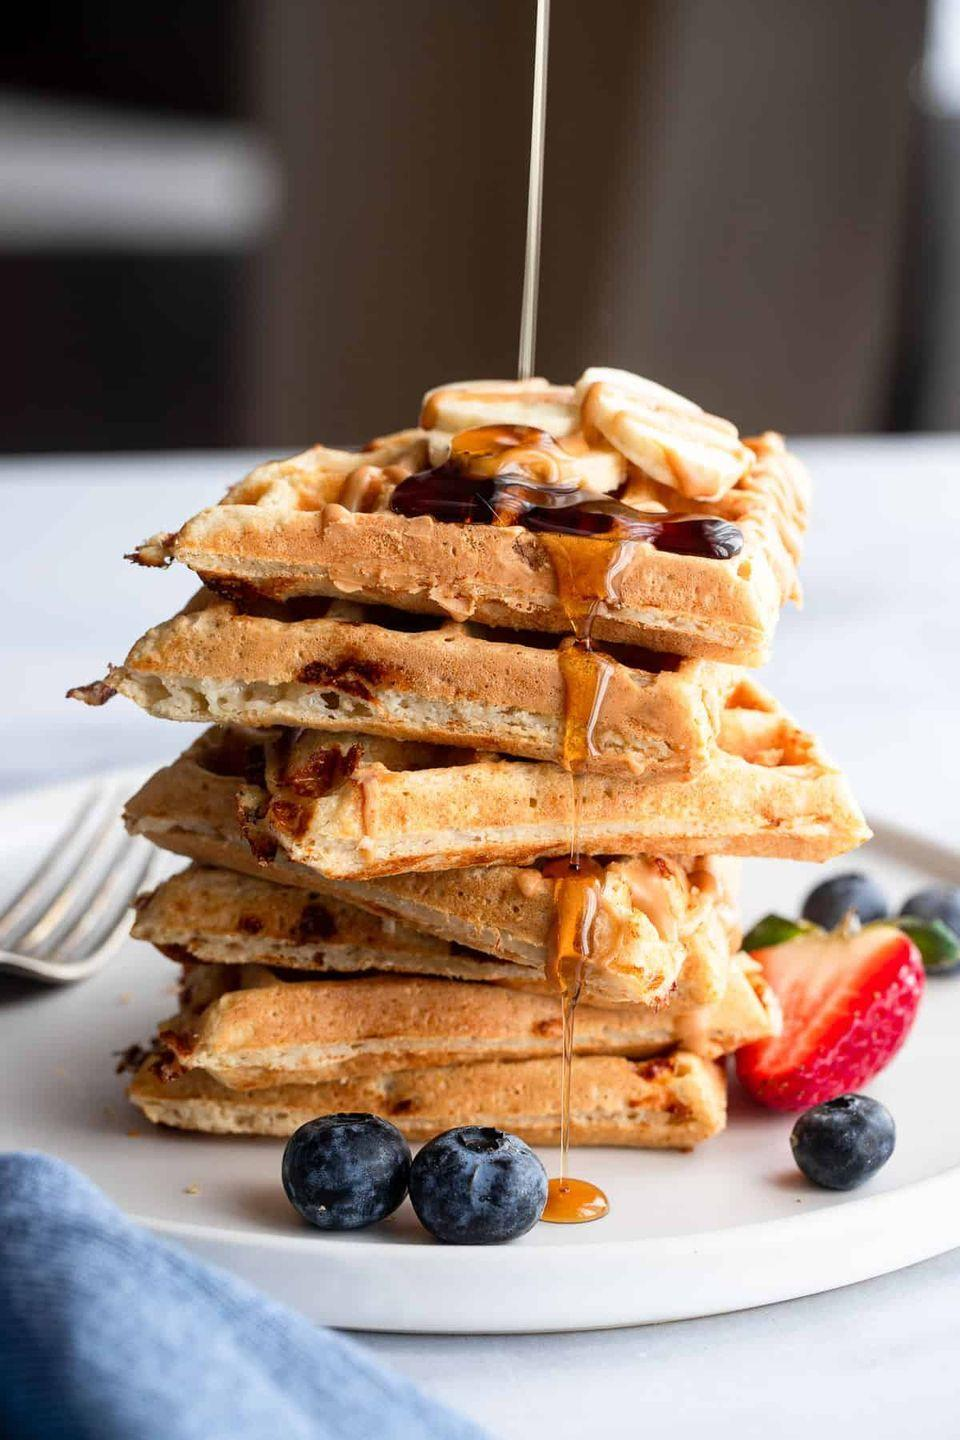 """<p>There are two secret ingredients in these power-packed waffles: protein powder and cottage cheese. The protein powder keeps you full and gives you a boost of energy, while the cottage cheese ensures the waffles don't dry out.</p><p><strong>Get the recipe at <a href=""""https://www.foodfaithfitness.com/protein-waffles/"""" rel=""""nofollow noopener"""" target=""""_blank"""" data-ylk=""""slk:Food Faith Fitness"""" class=""""link rapid-noclick-resp"""">Food Faith Fitness</a>.</strong></p><p><strong><a class=""""link rapid-noclick-resp"""" href=""""https://go.redirectingat.com?id=74968X1596630&url=https%3A%2F%2Fwww.walmart.com%2Fsearch%2F%3Fquery%3Dwaffle%2Bmaker&sref=https%3A%2F%2Fwww.thepioneerwoman.com%2Ffood-cooking%2Fmeals-menus%2Fg34922086%2Fhealthy-breakfast-ideas%2F"""" rel=""""nofollow noopener"""" target=""""_blank"""" data-ylk=""""slk:SHOP WAFFLE MAKERS"""">SHOP WAFFLE MAKERS</a><br></strong></p>"""